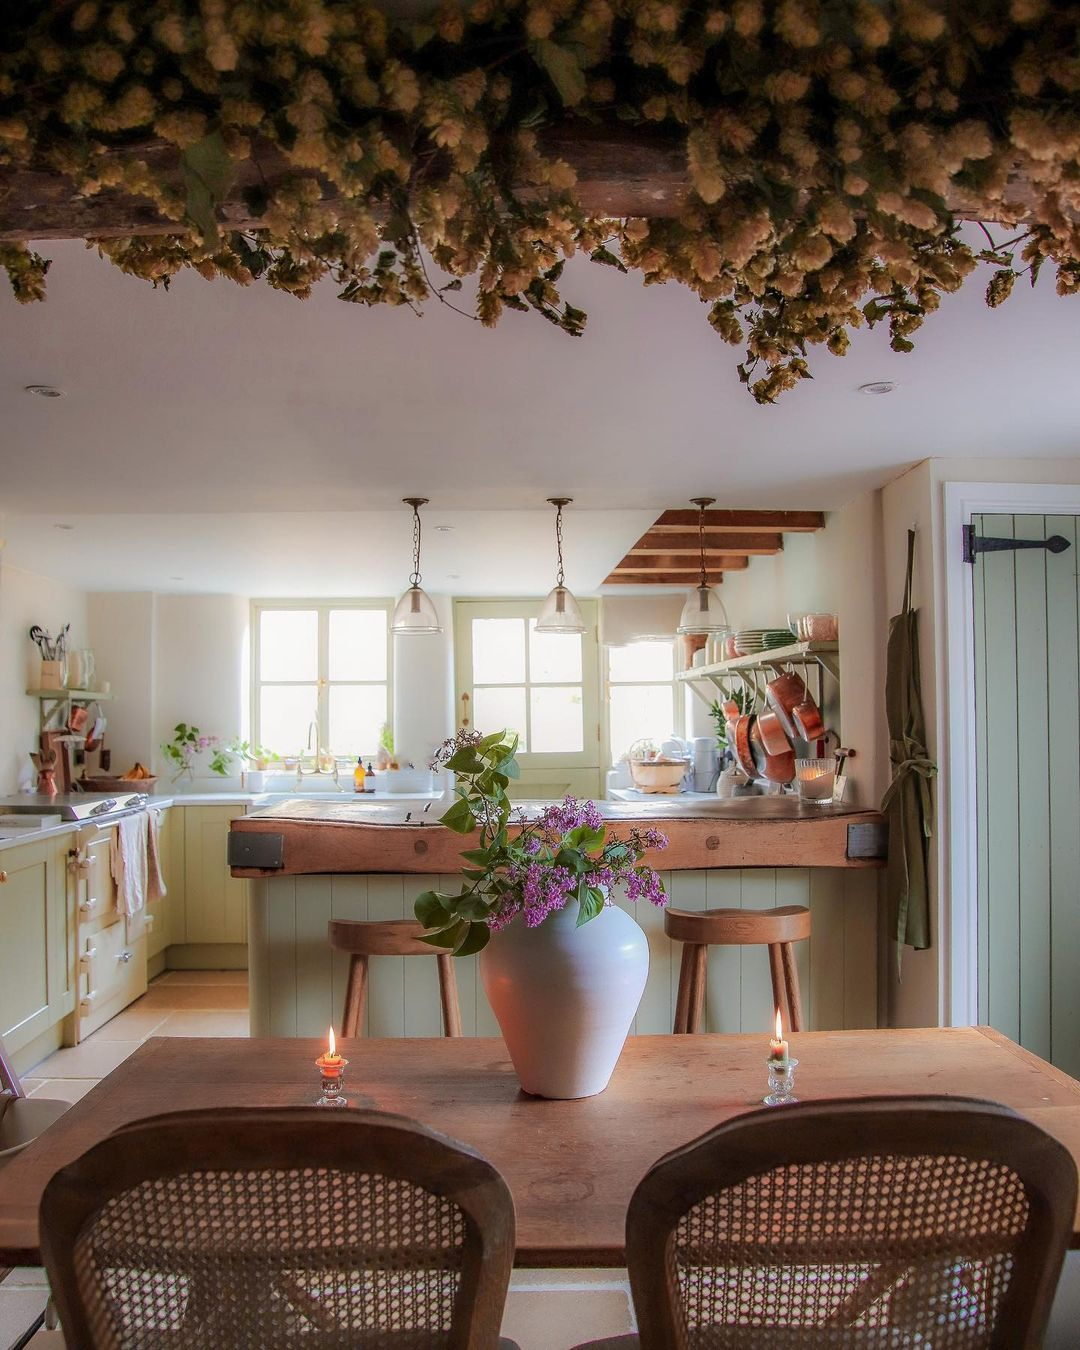 A charming traditional cottage kitchen featuring our Camille Oak dining chairs